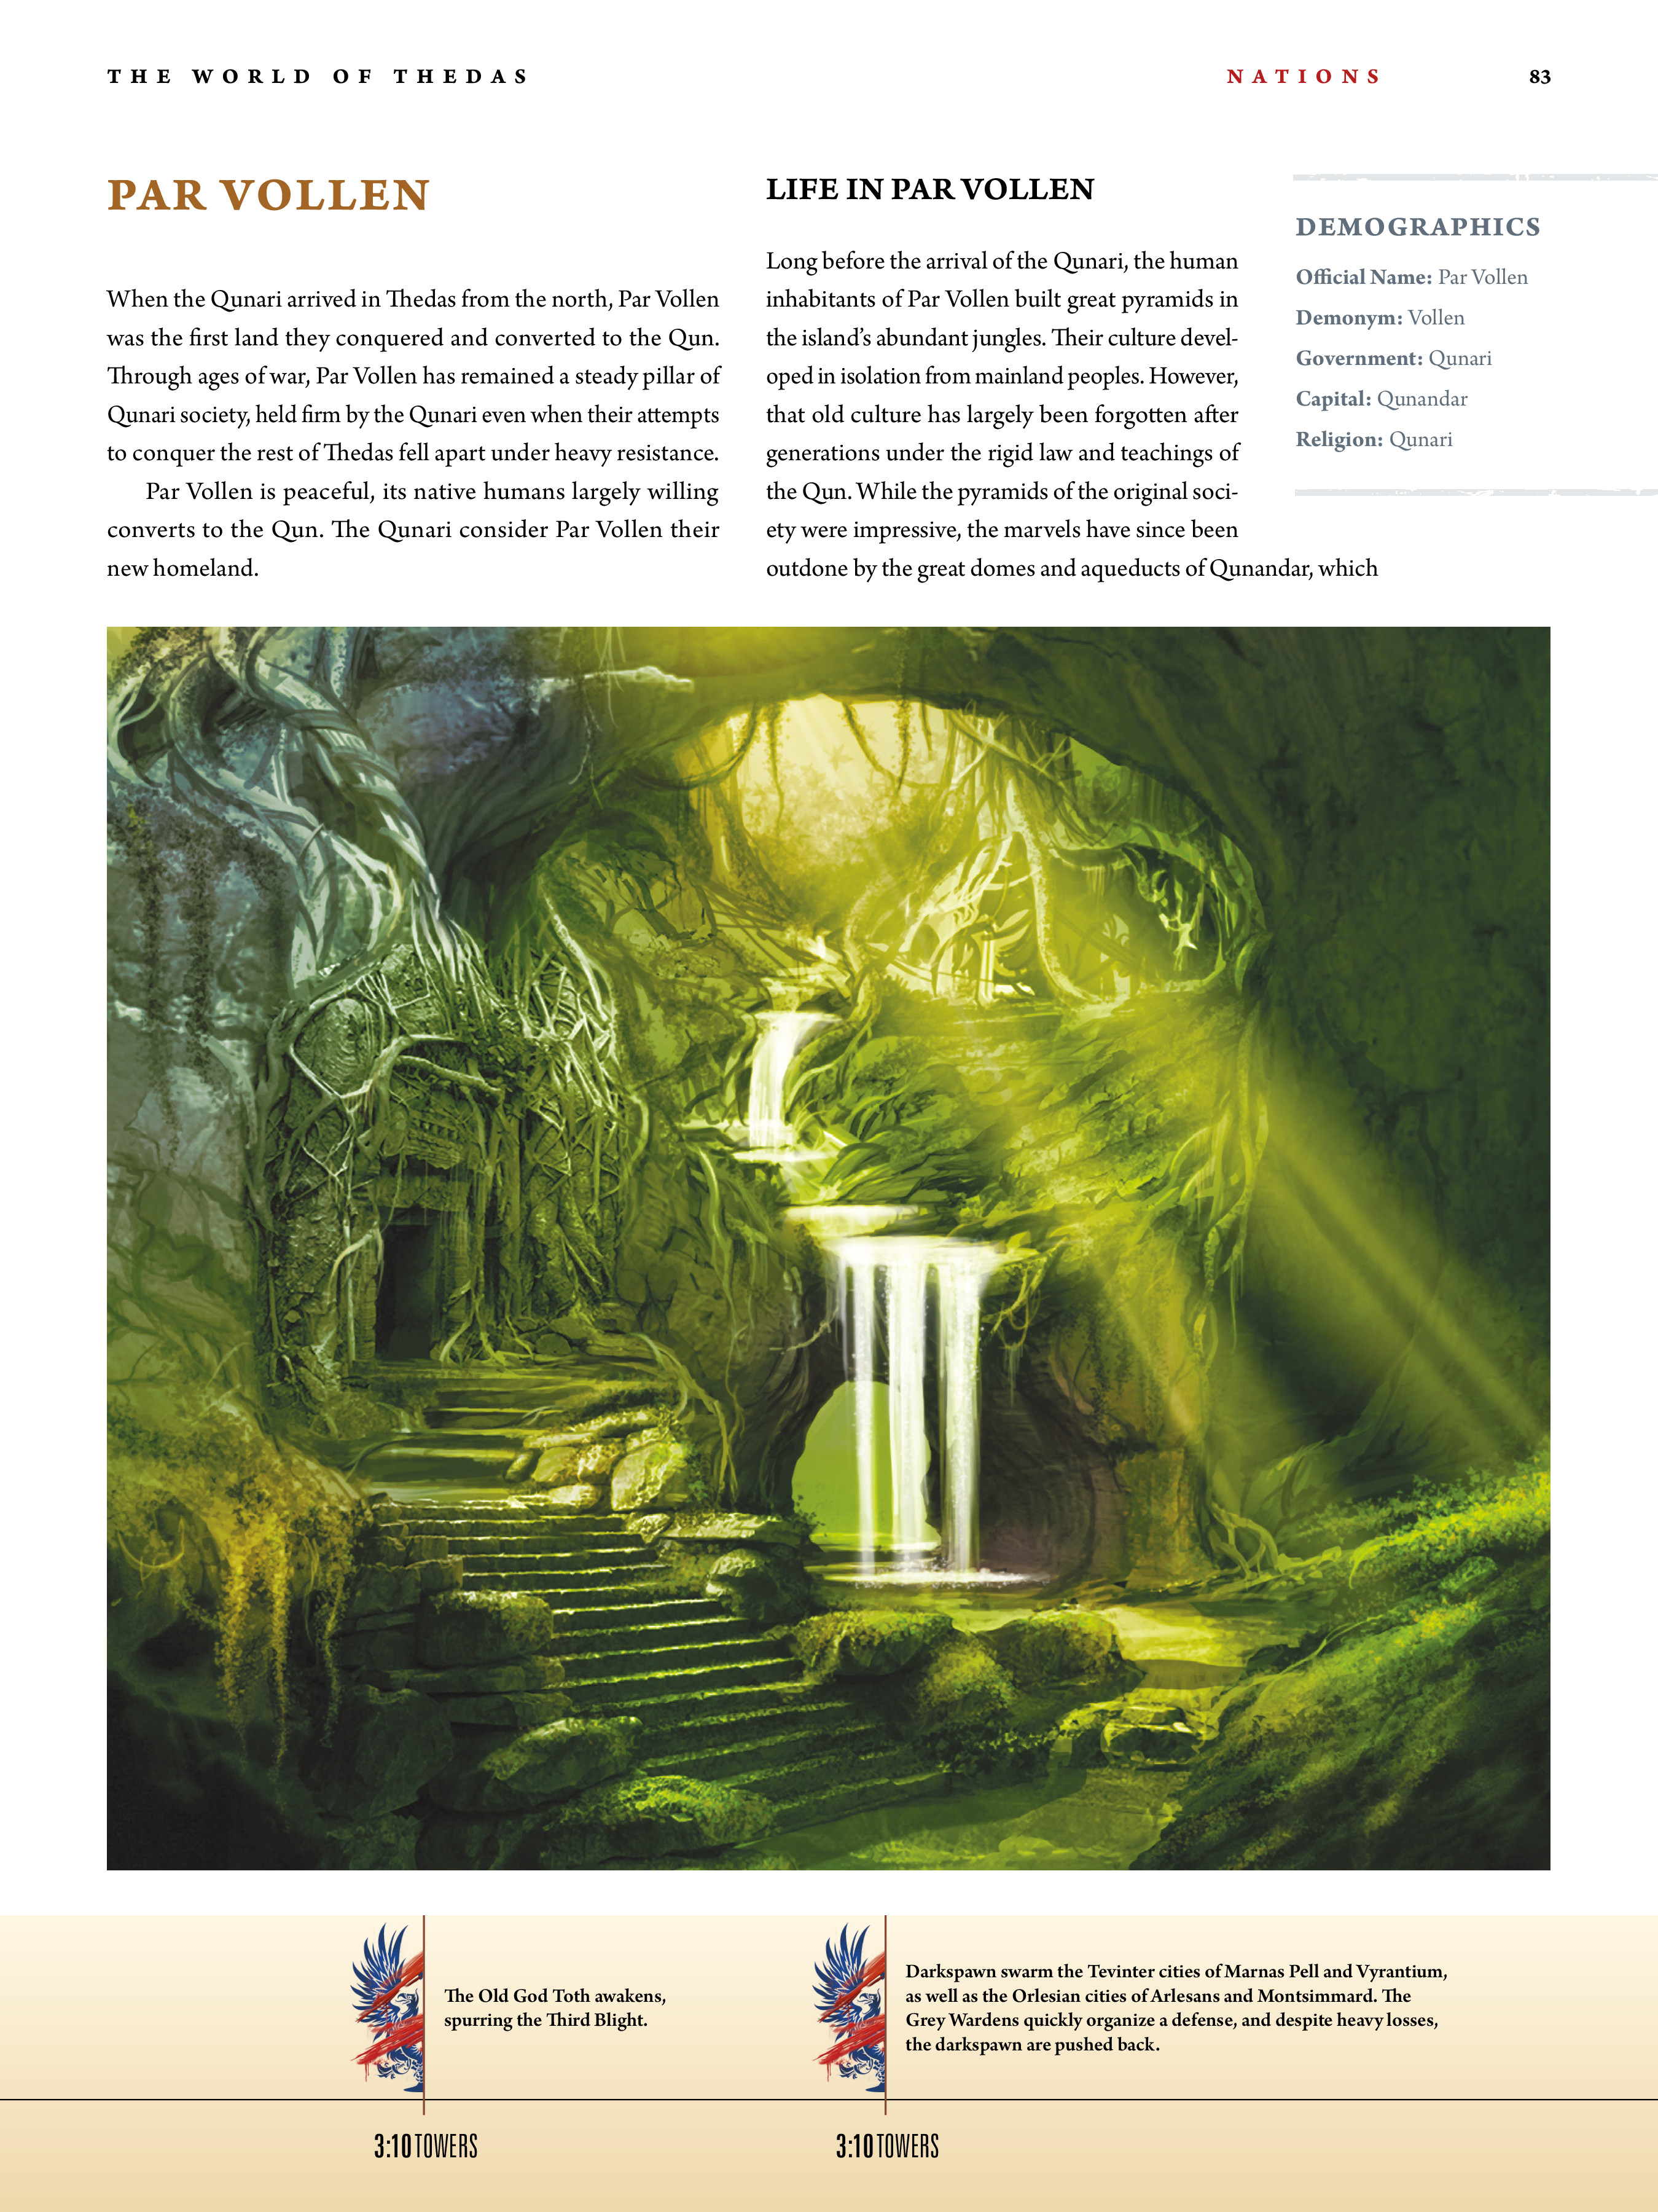 Read online Dragon Age: The World of Thedas comic -  Issue # TPB 1 - 67